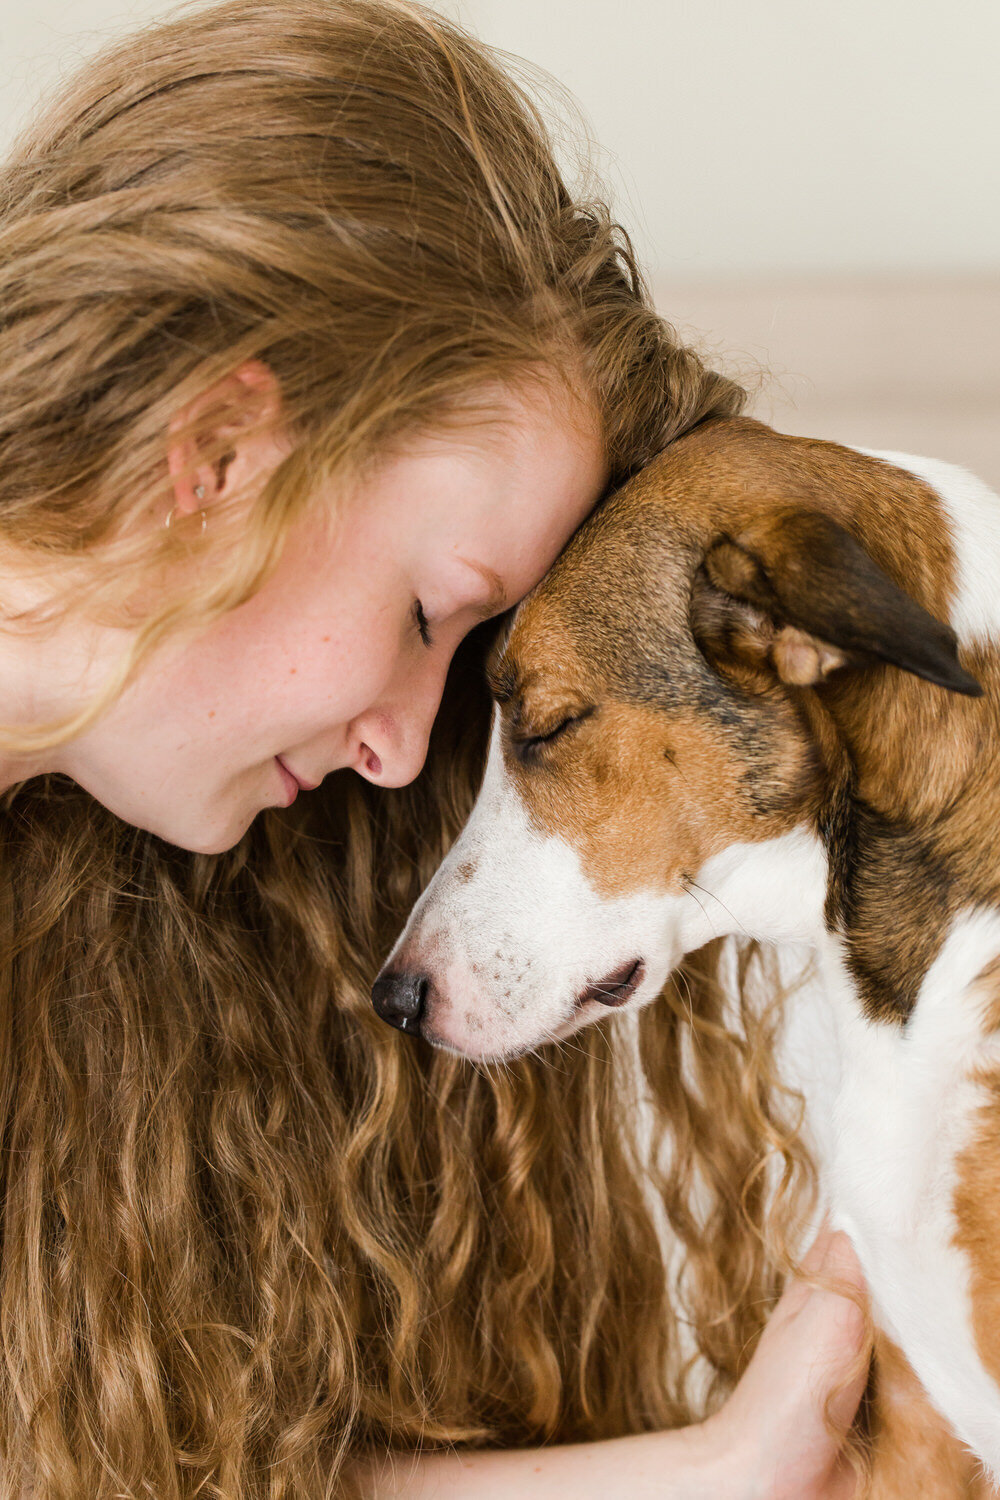 sweet photo of girl and dog in studio